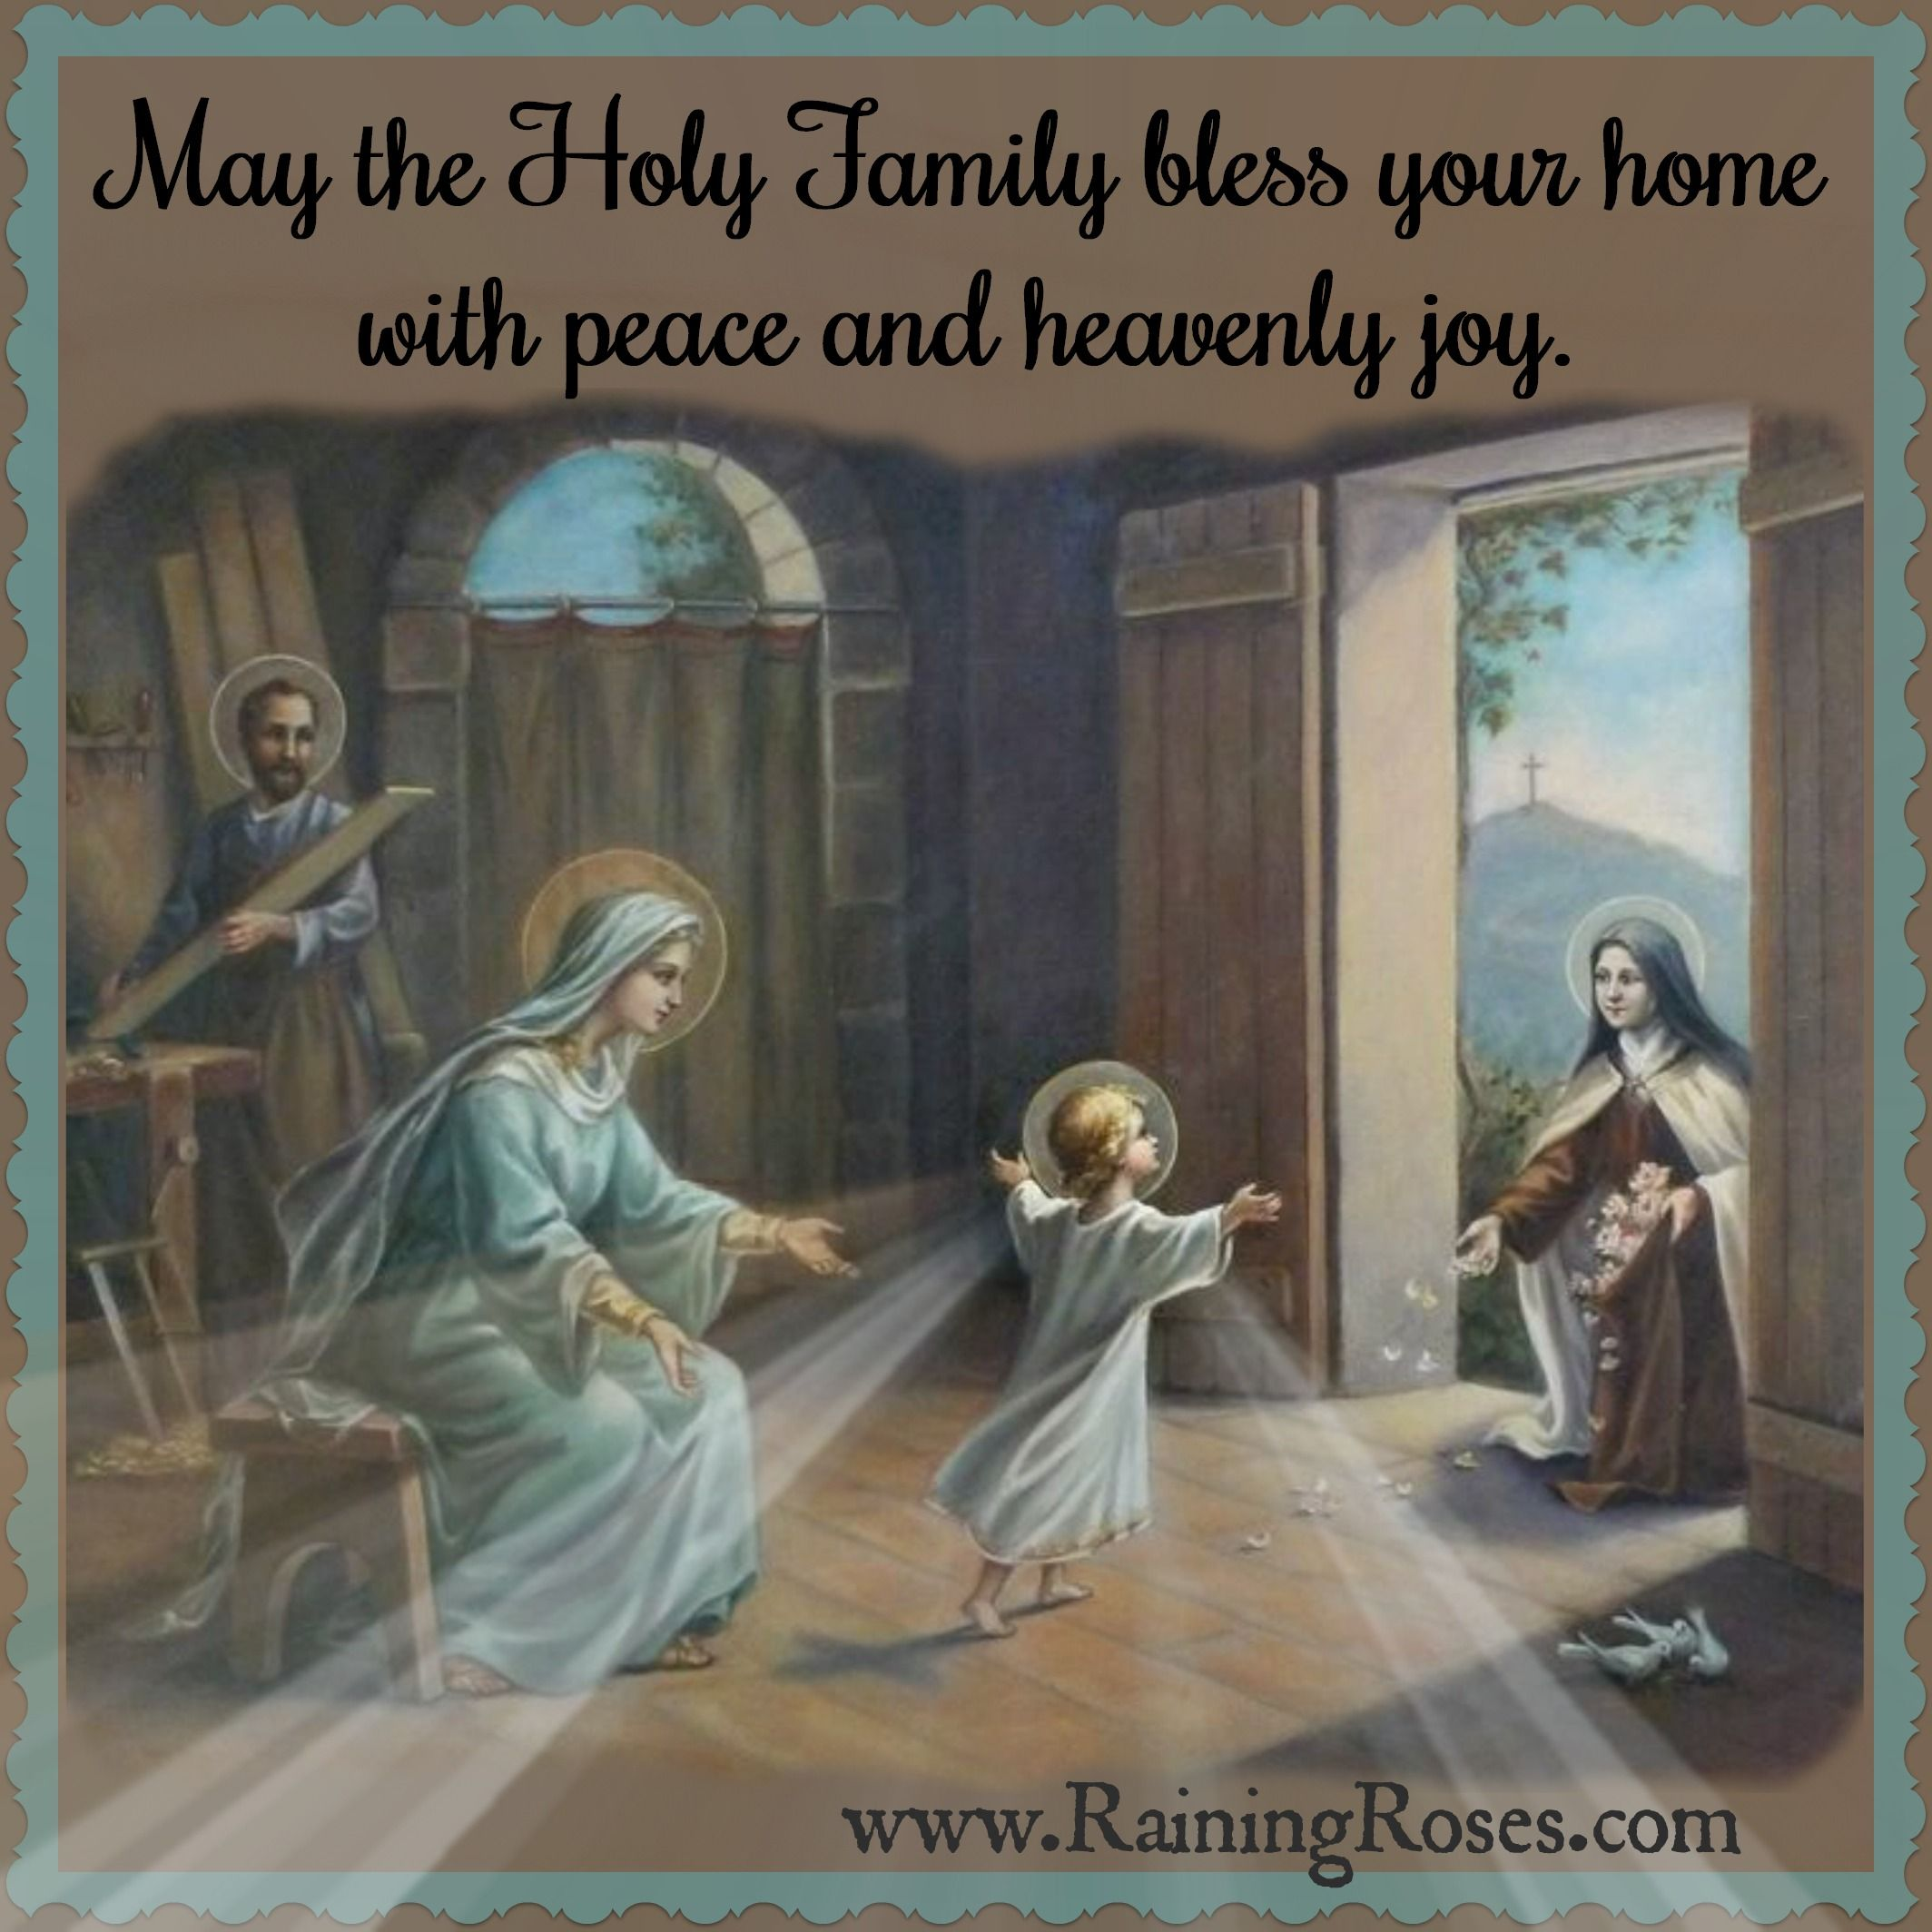 May the Holy Family bless your home with peace and